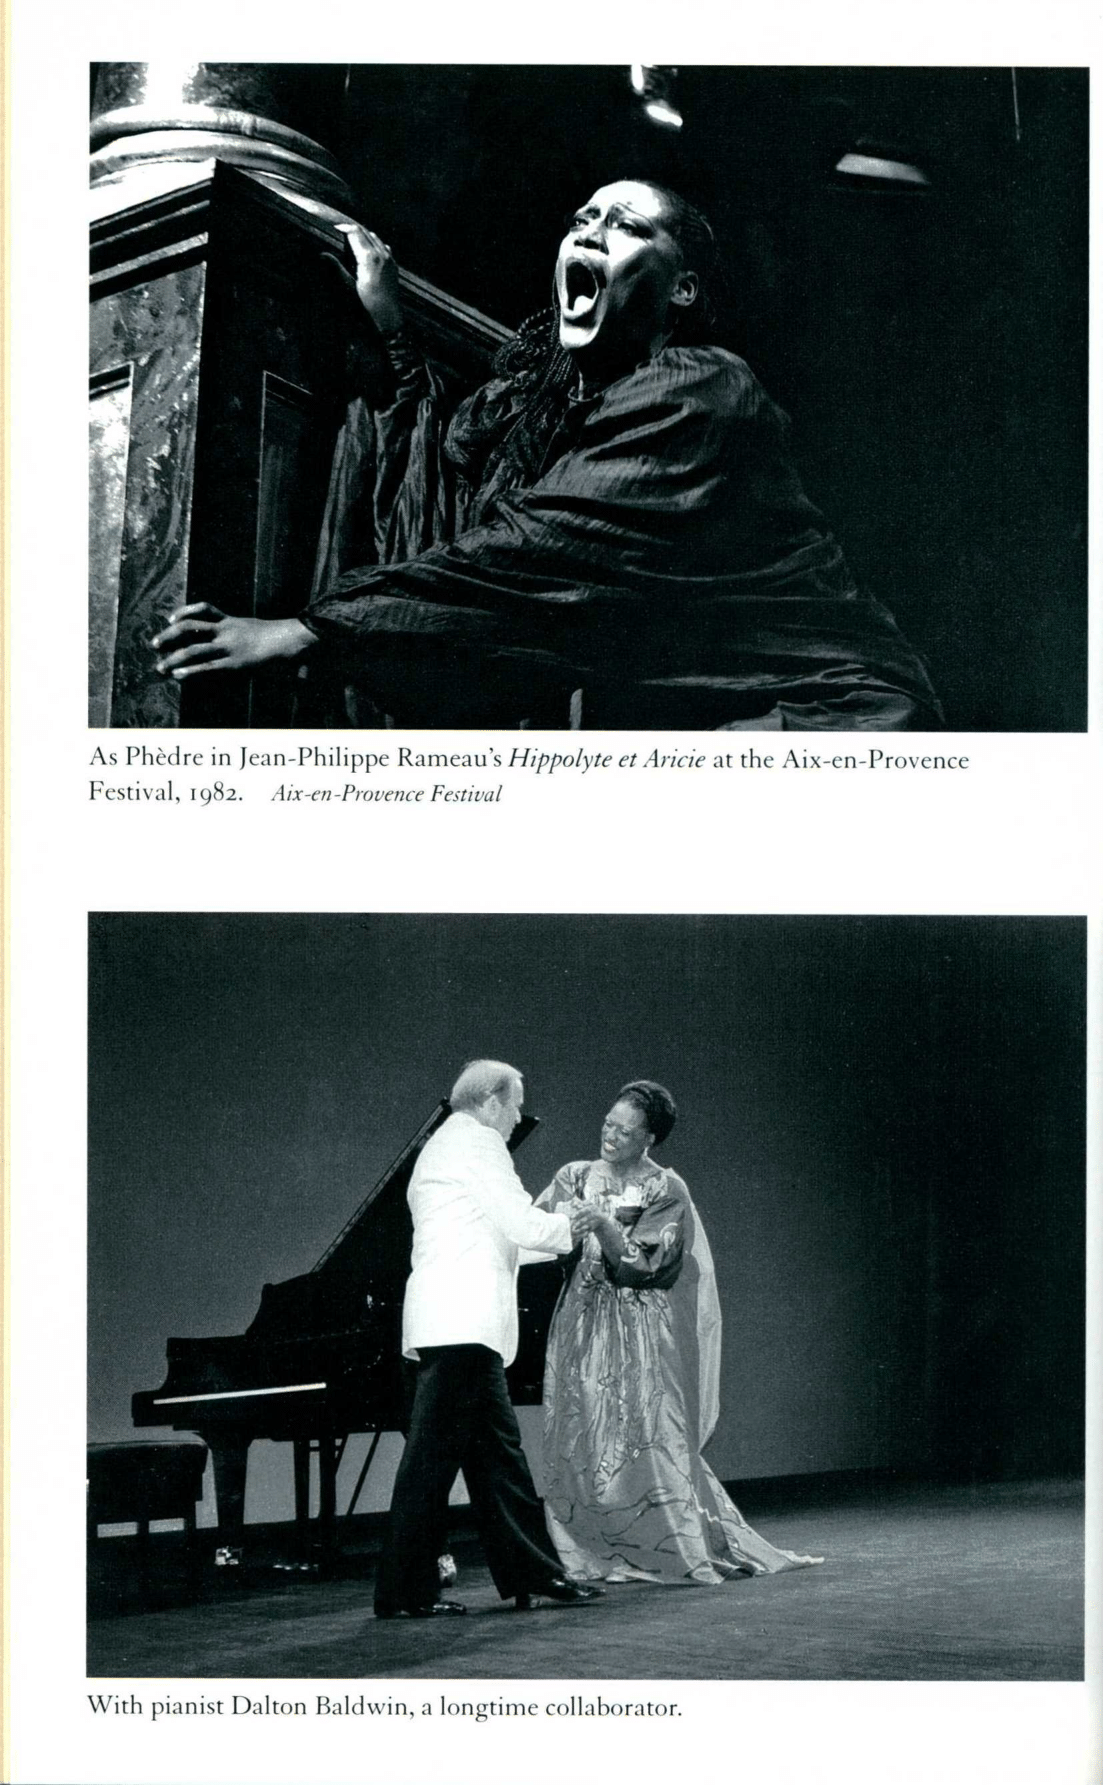 Jessye Norman as Phedre and a second photo woth pianist Dalton Baldwin